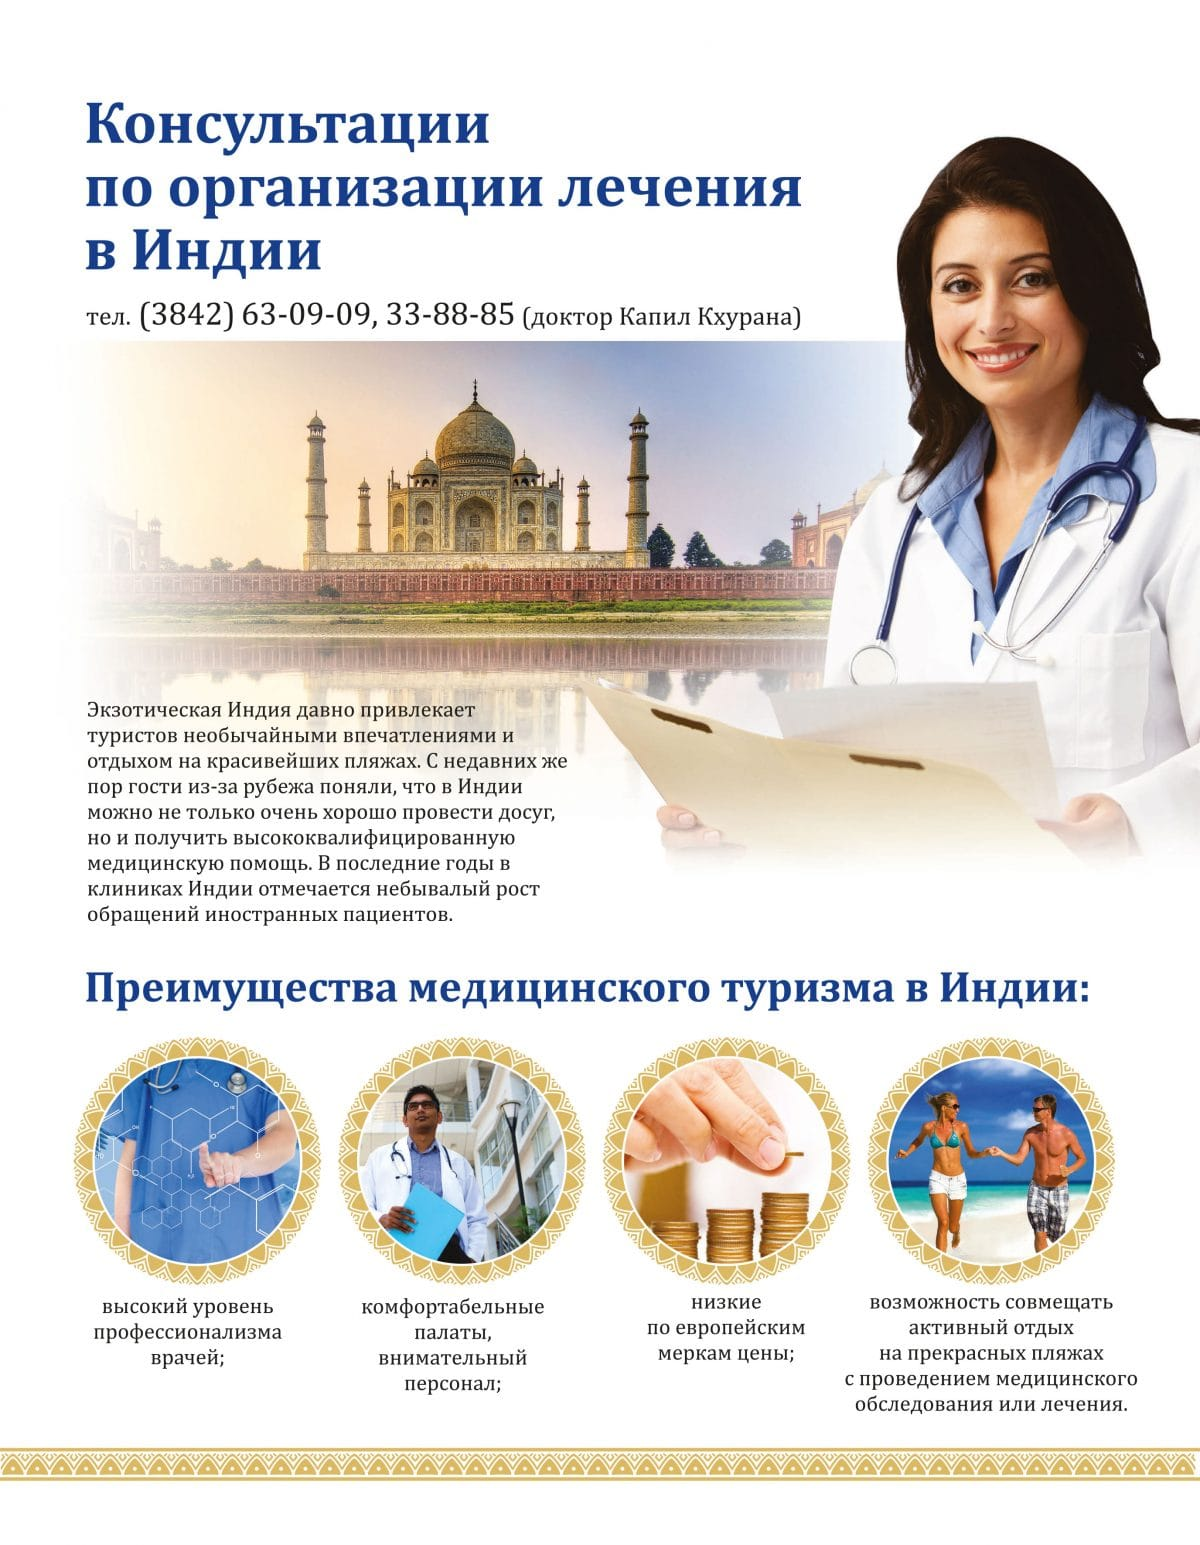 medical tourism in india a proposal India's medical tourism sector is a growing source of foreign exchange as well as prestige and goodwill outside the country having supported medical tourism's rapid growth, the government is under pressure to find ways to make the sector of benefit to public health services that are used by.